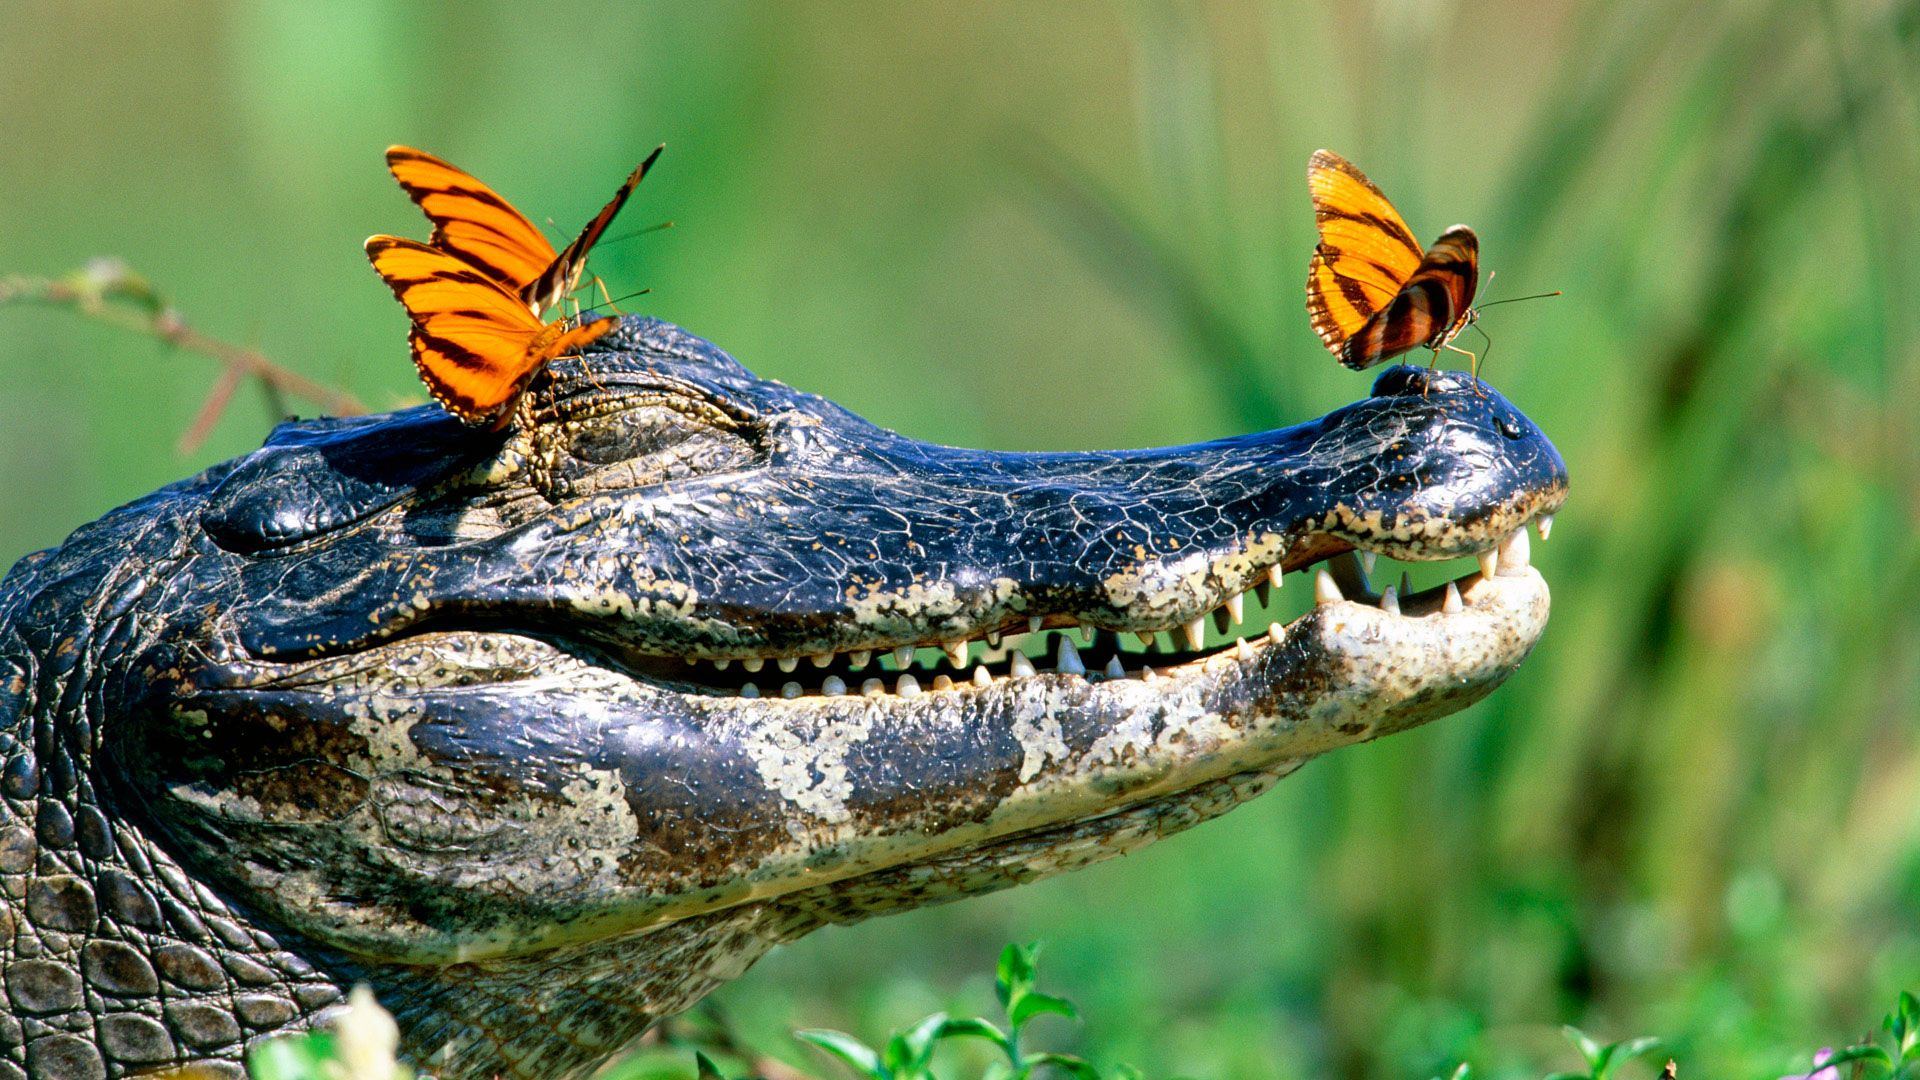 The Picture Crocodile Ulybka With Butterflies